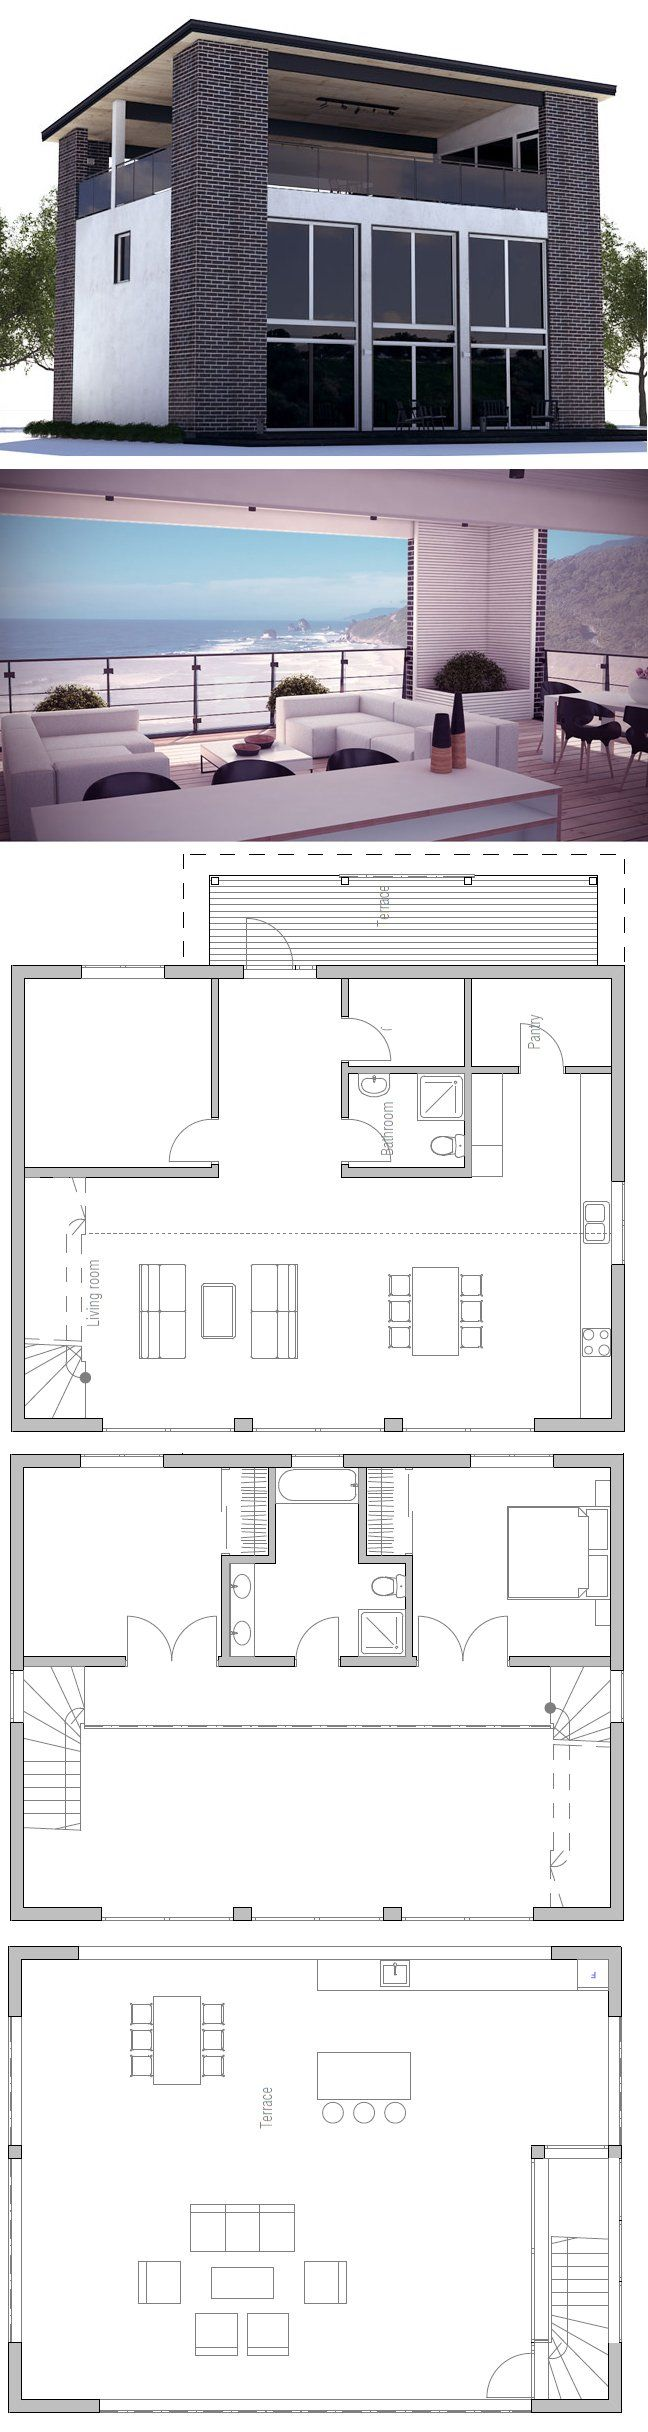 Modern house plan with rooftop terrace three bedrooms high ceilings house plan pinterest - House plans high ceilings ...